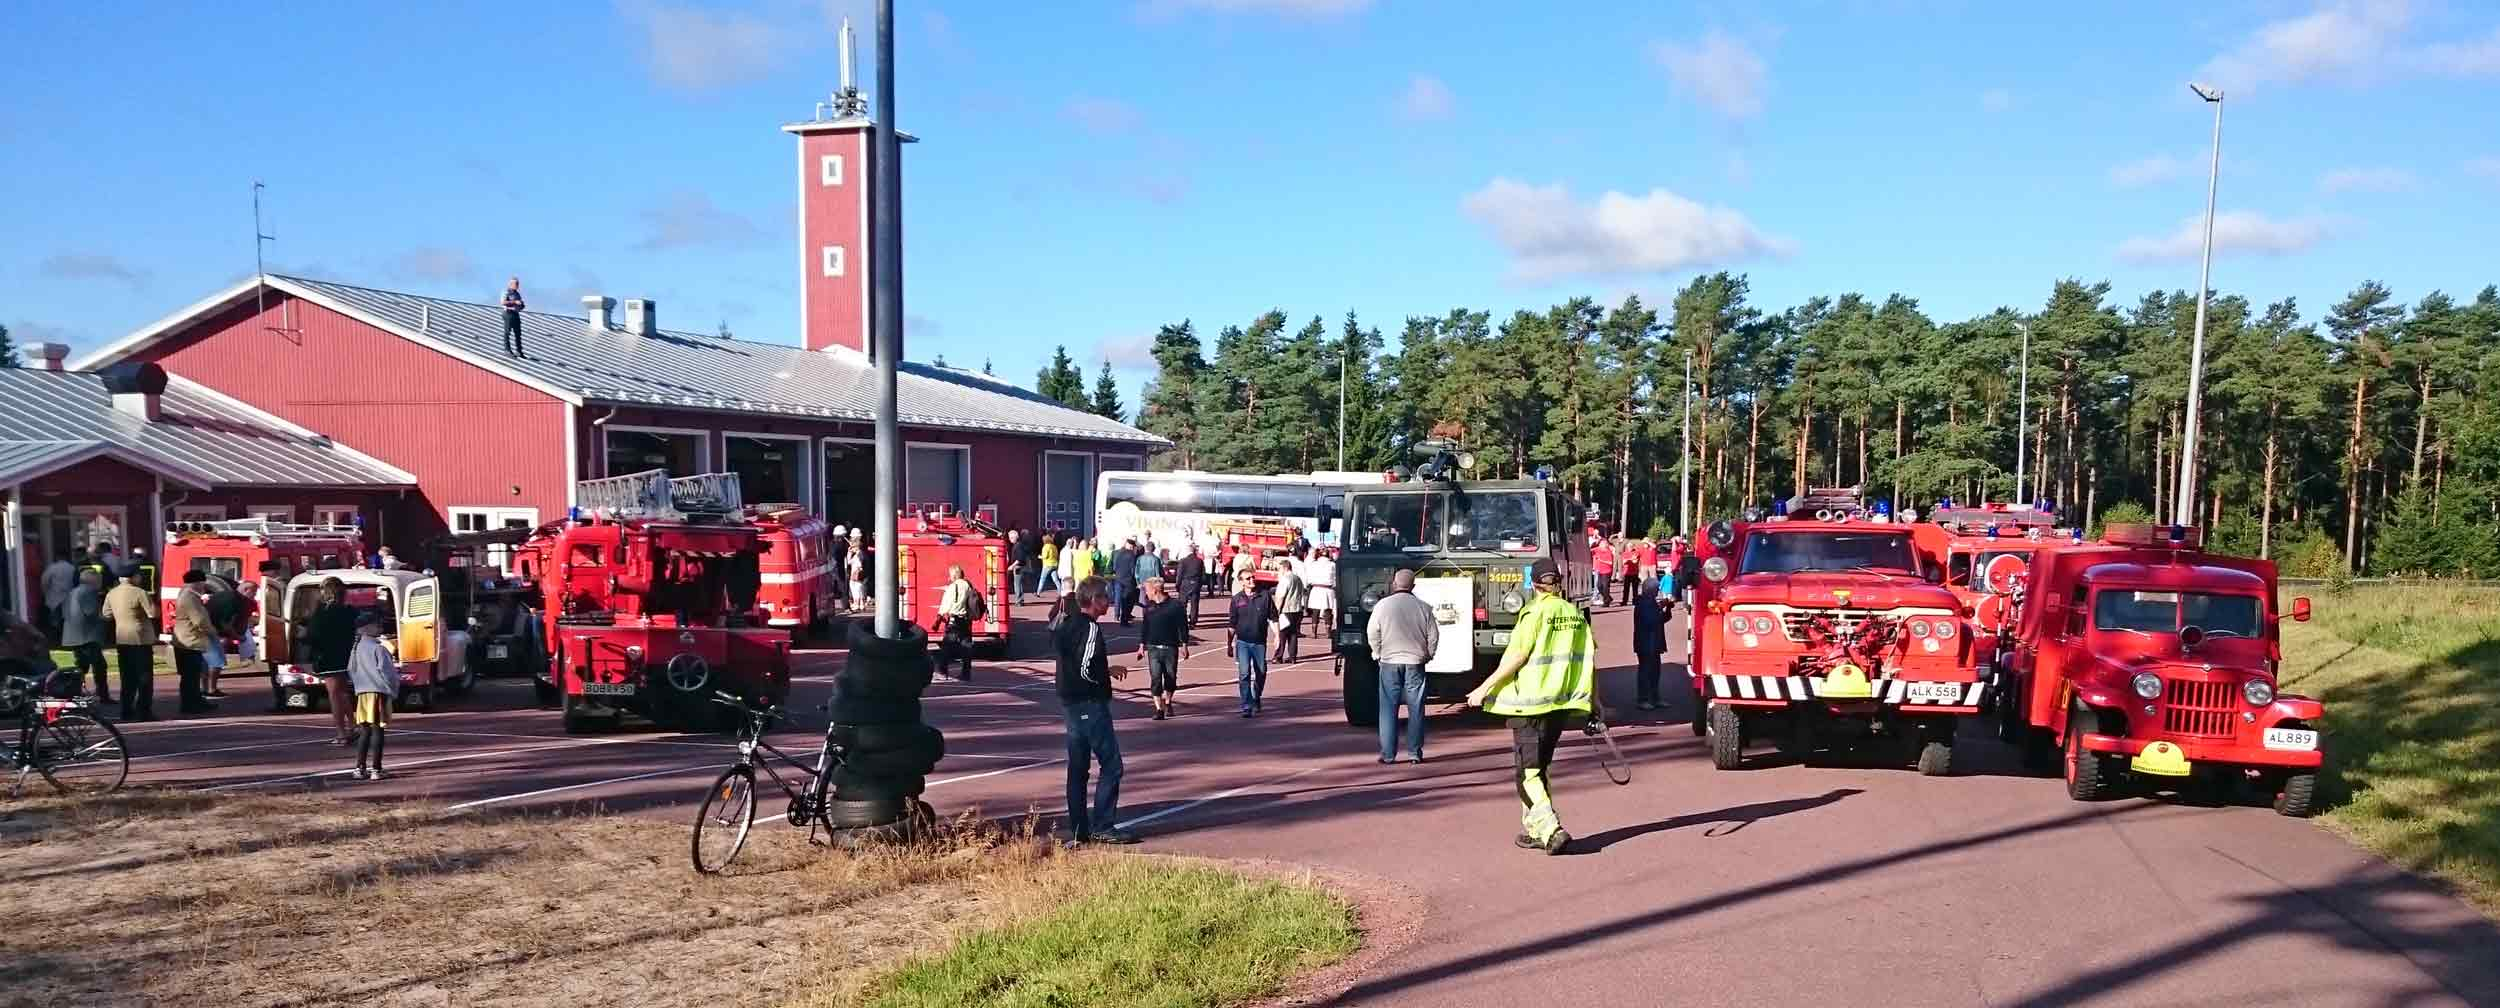 Åland-13-sept-2015-red-w